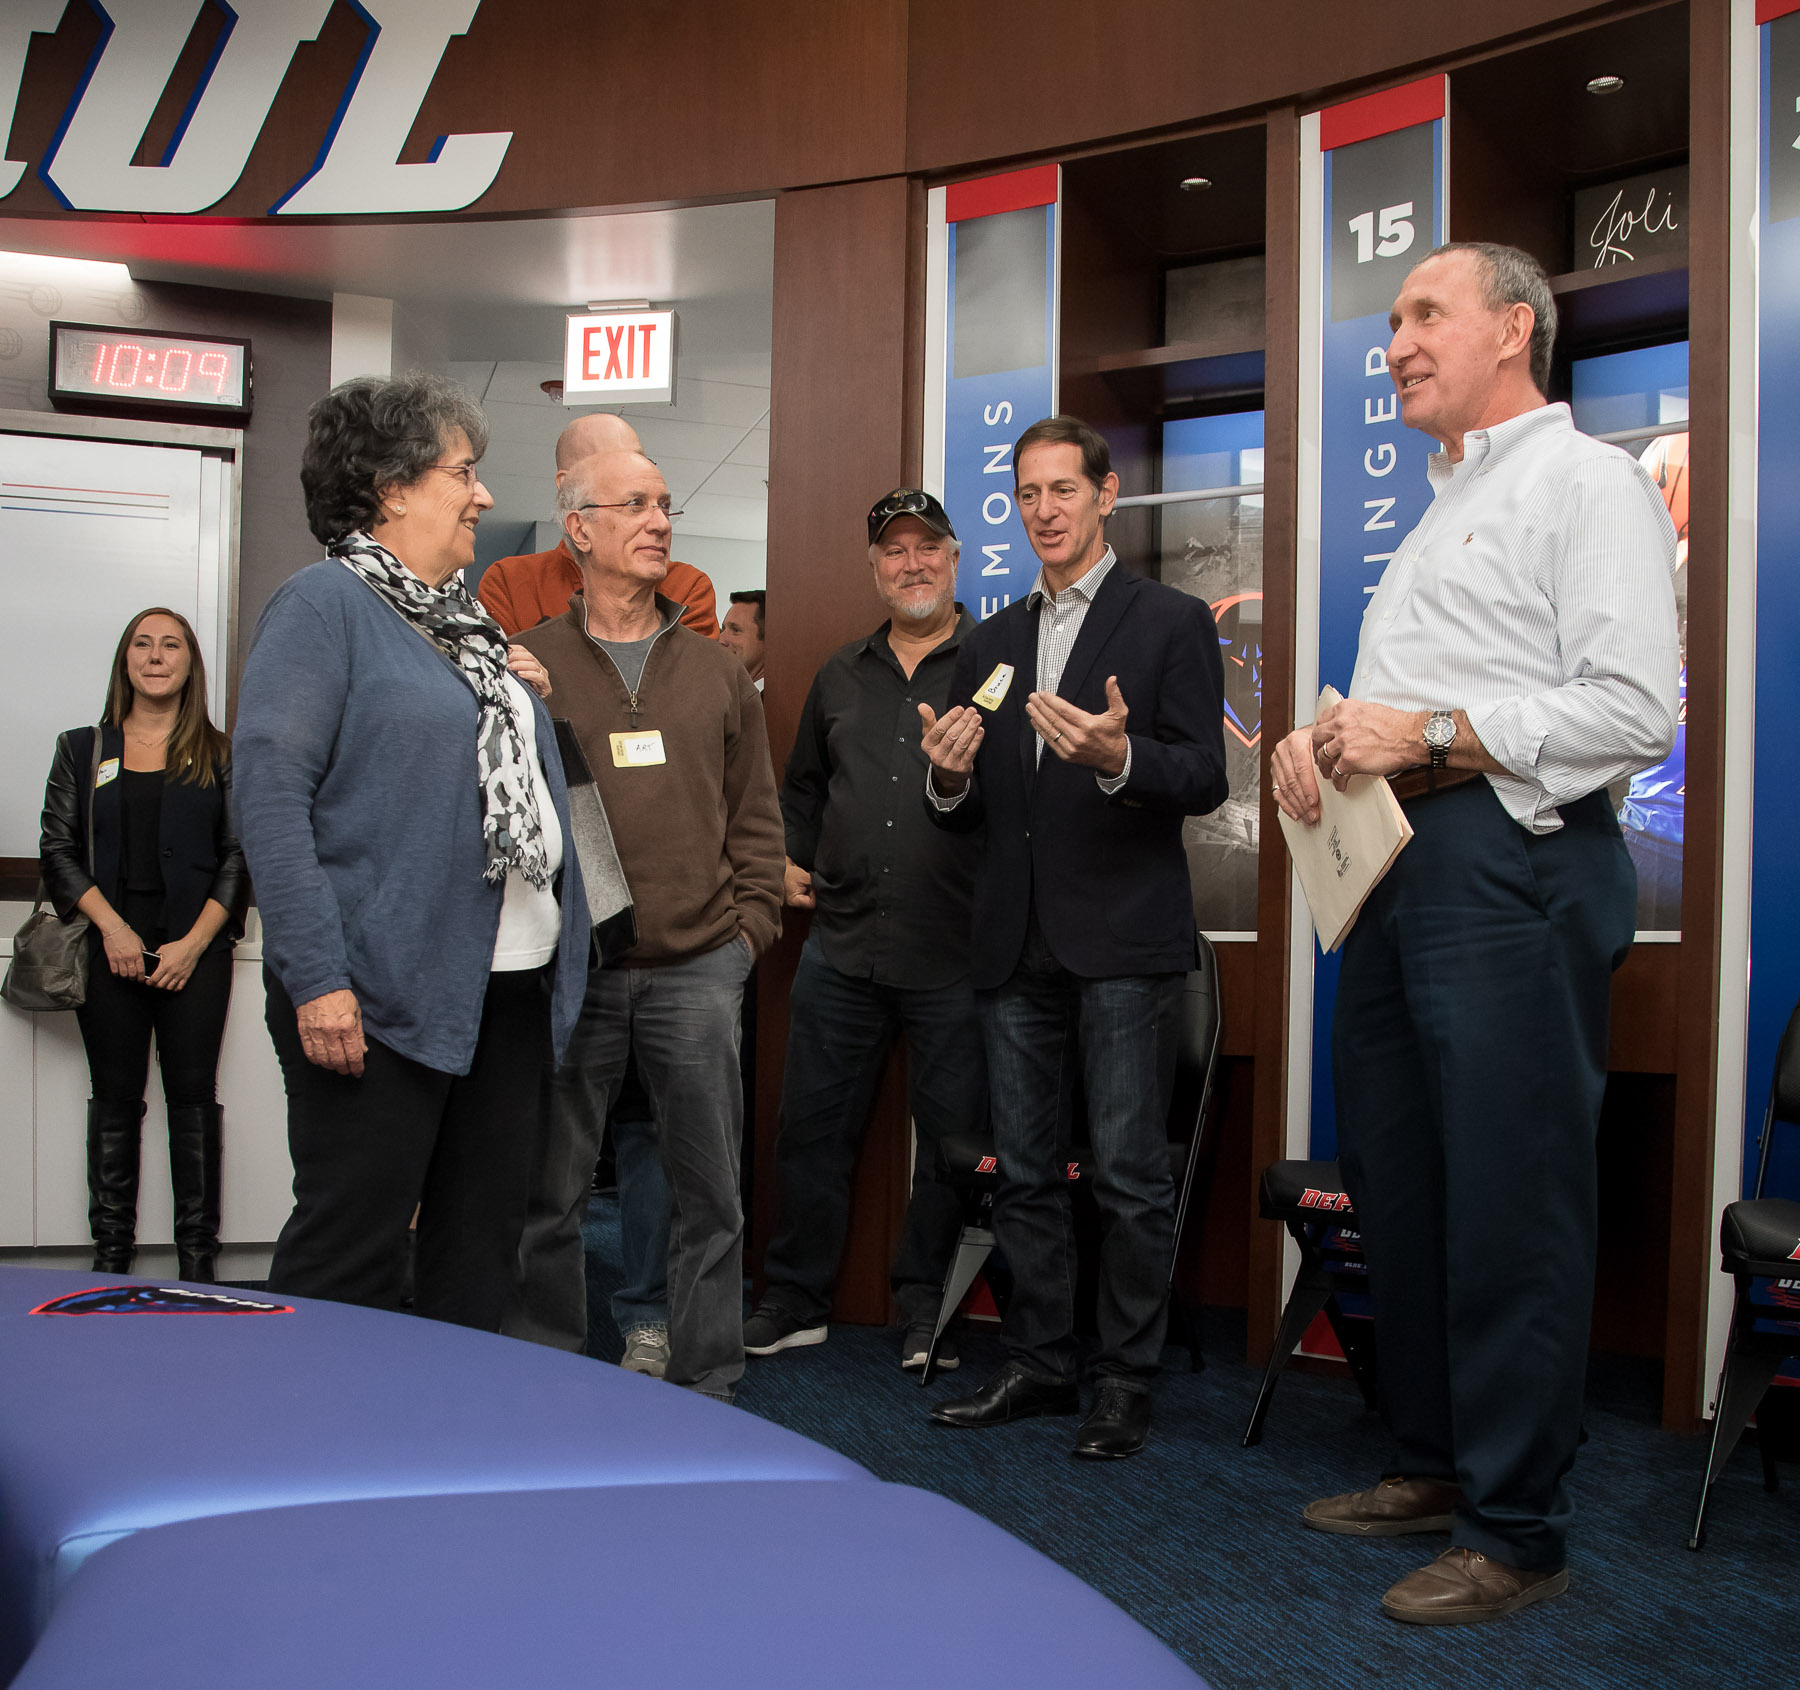 Bob Janis, vice president of facility operations, far right, answers questions about the women's basketball locker room. (DePaul University/Jeff Carrion)